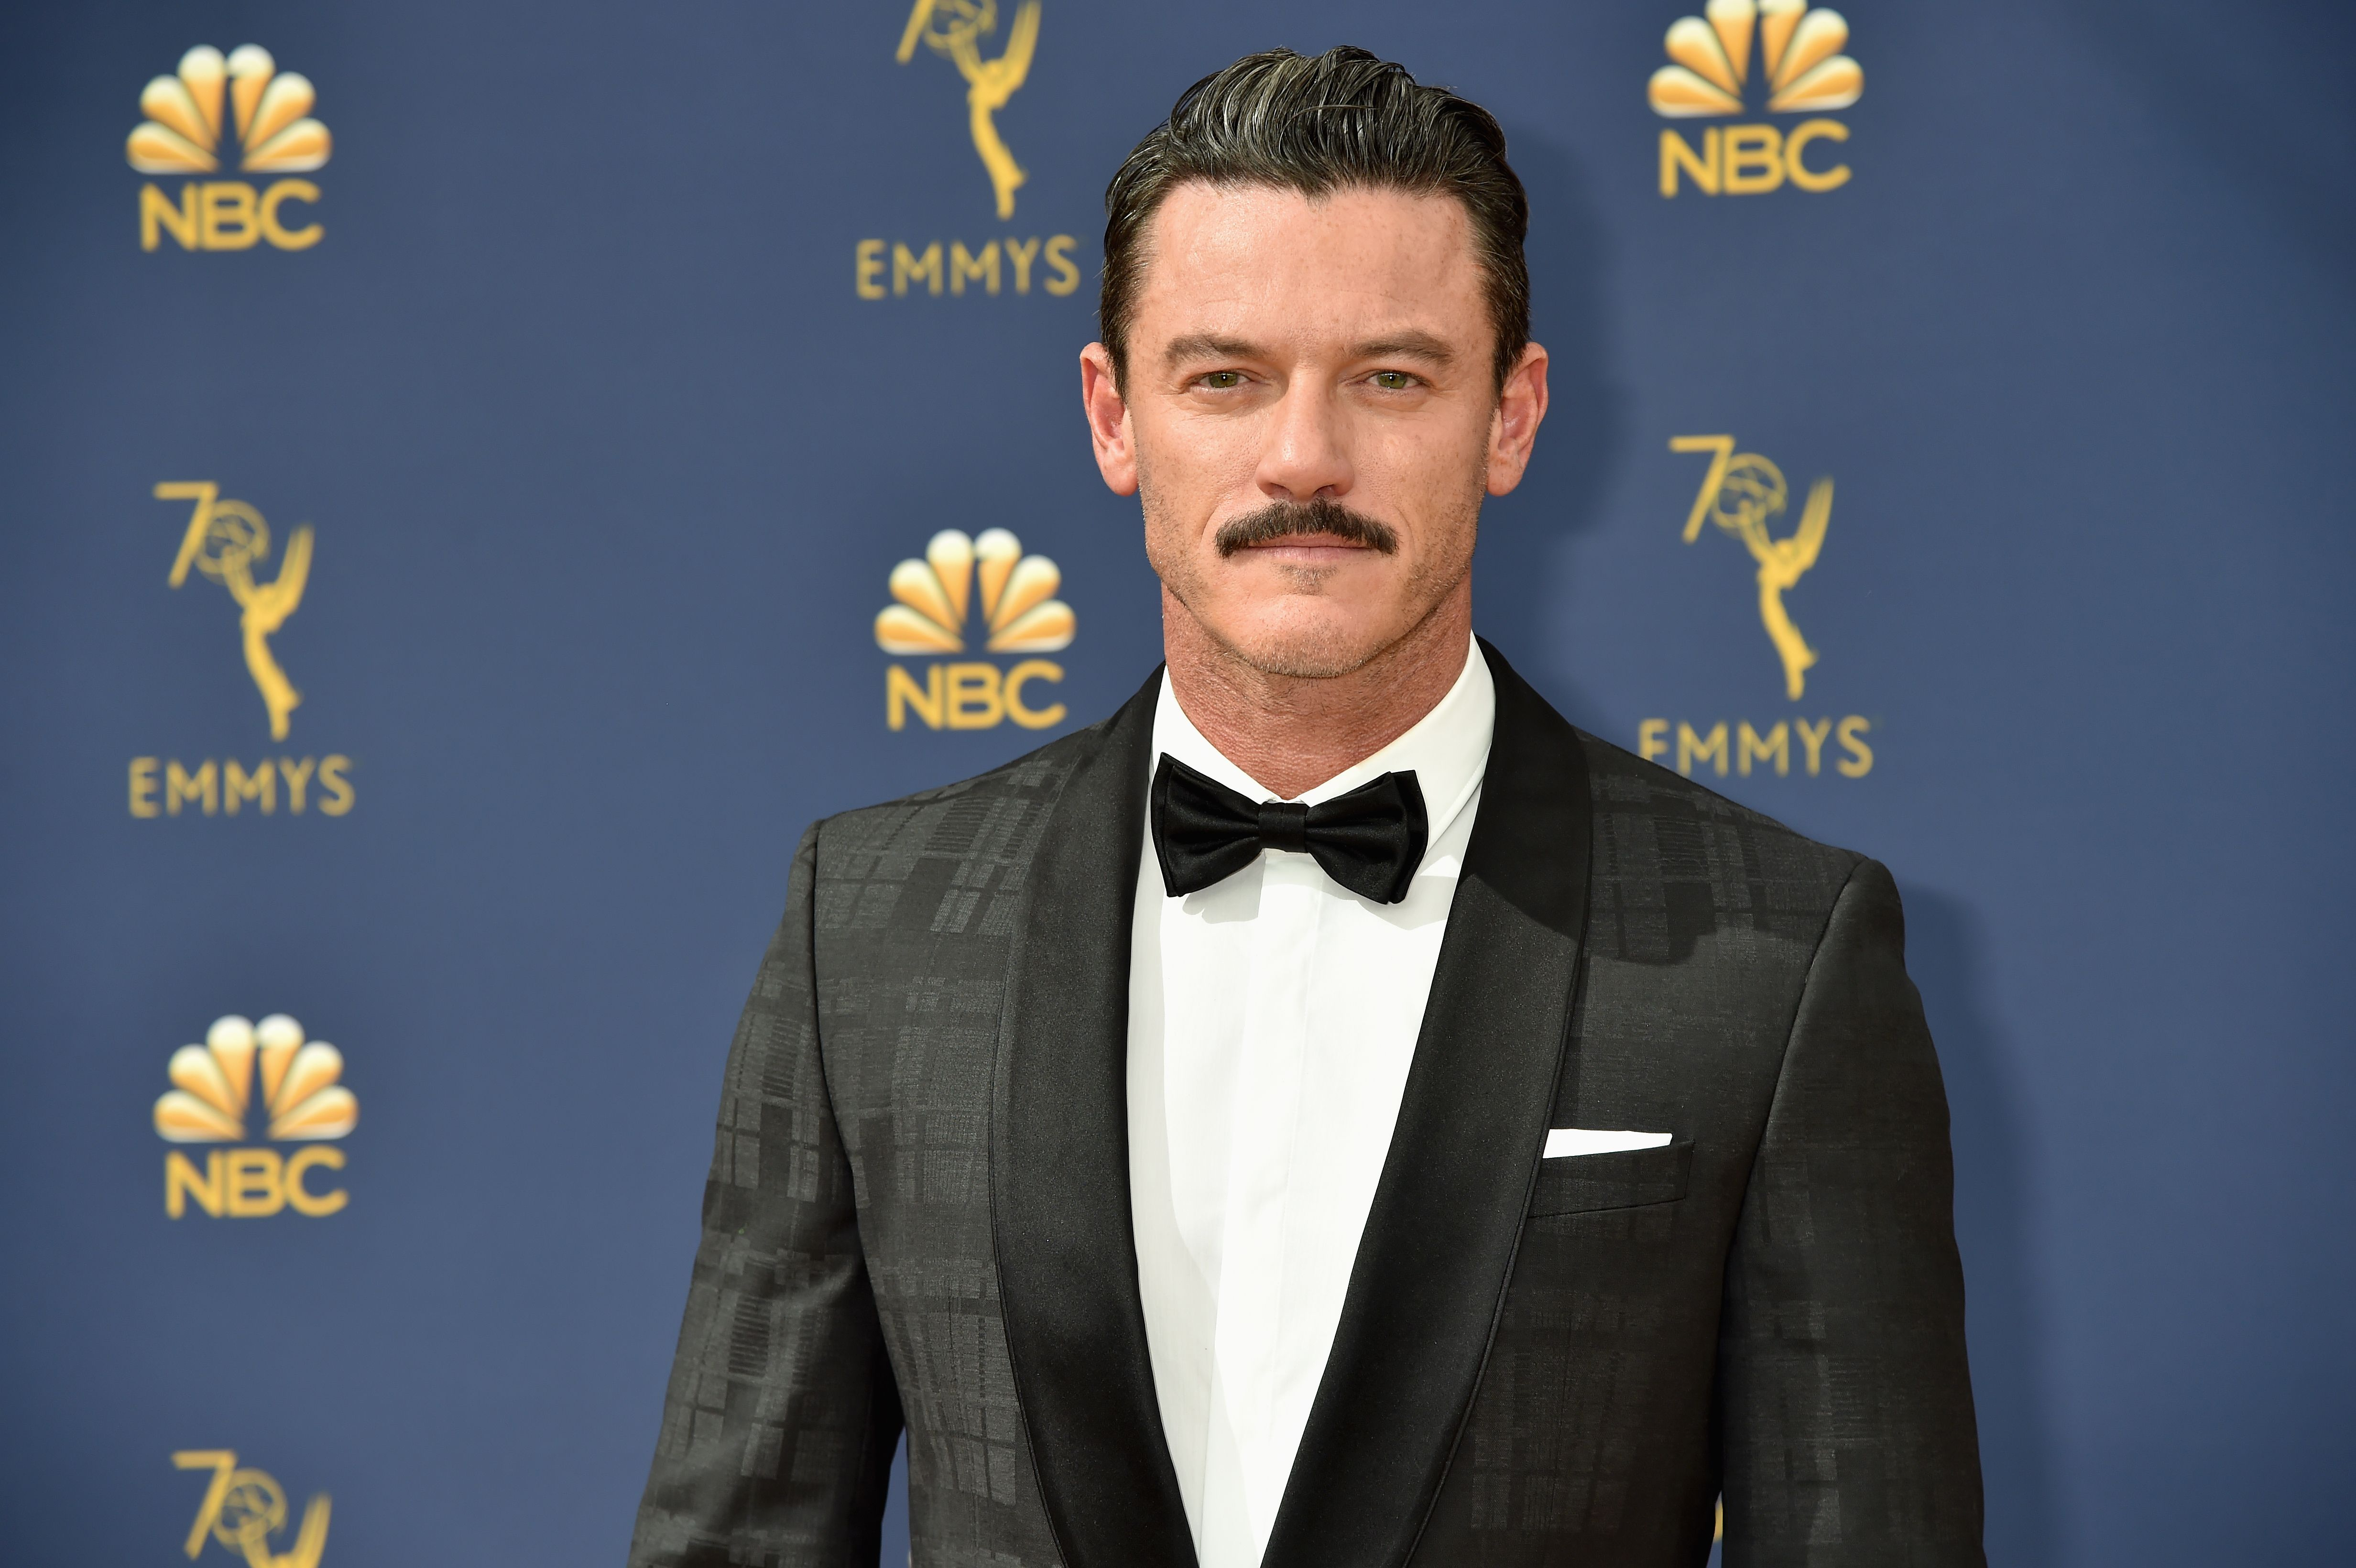 Luke Evans attends the 70th Emmy Awards at Microsoft Theater on September 17, 2018 in Los Angeles, California. | Photo: Getty Images